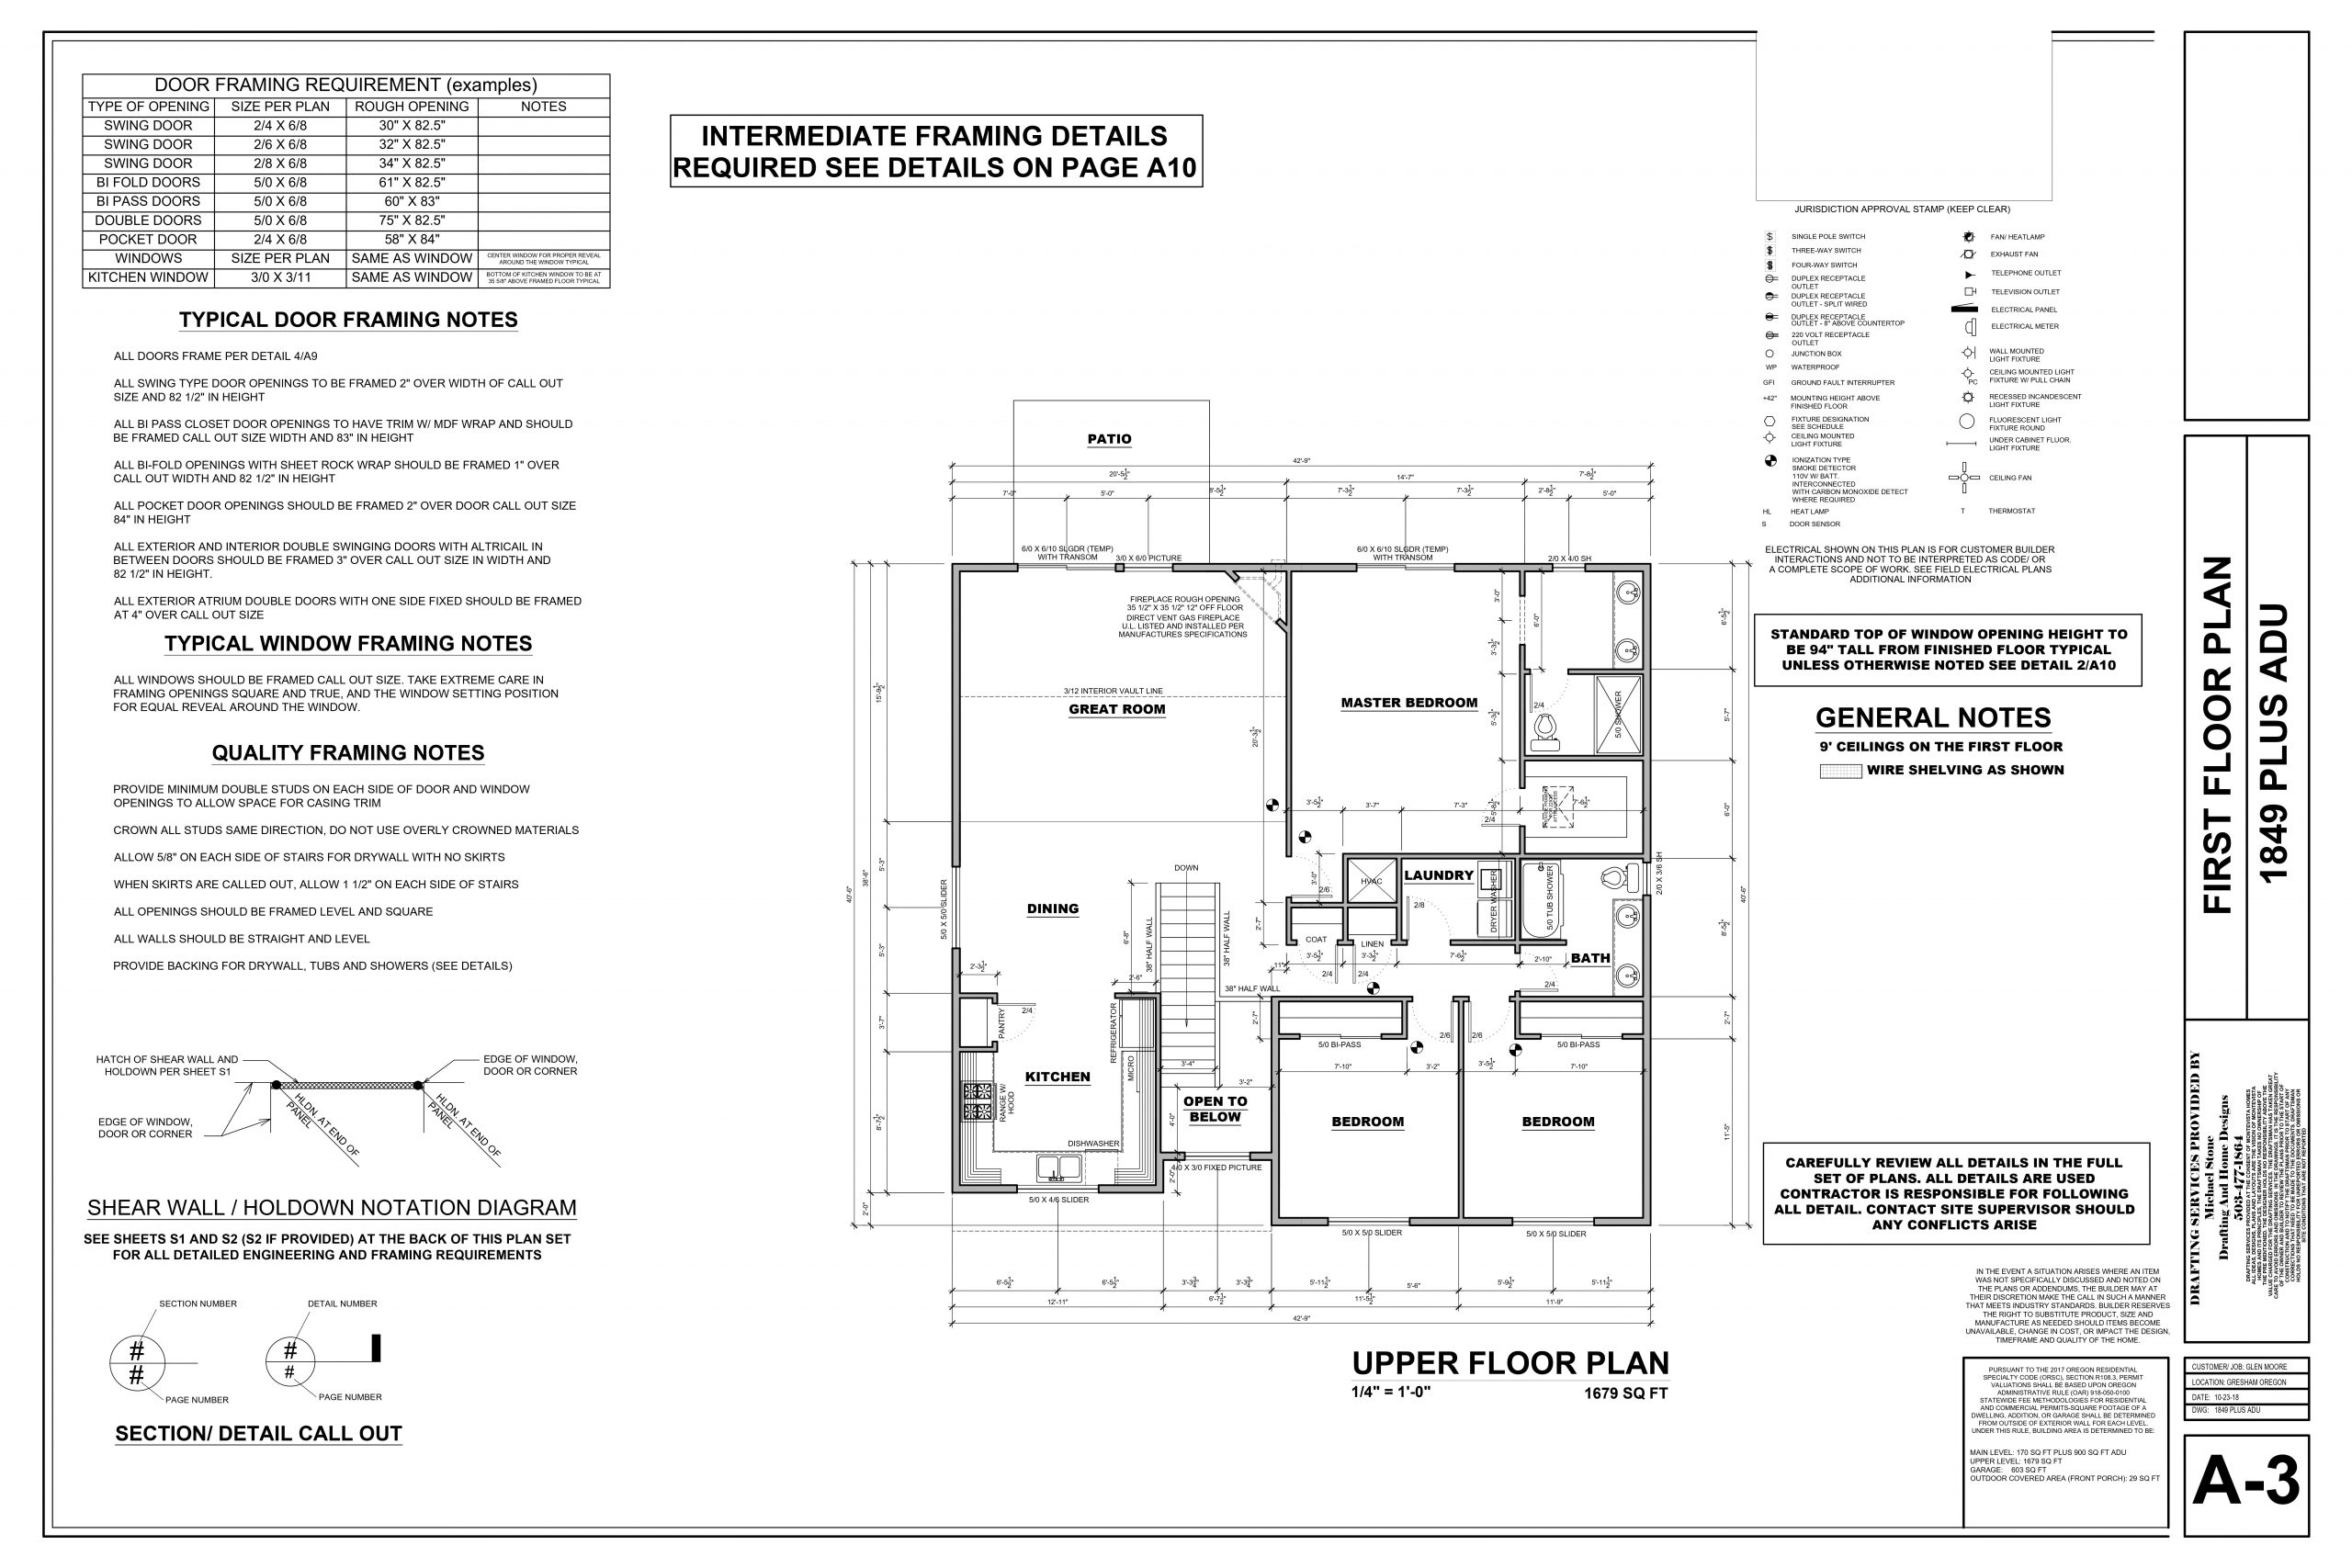 Floorplan for one of the spec homes from Quality Calvary Construction